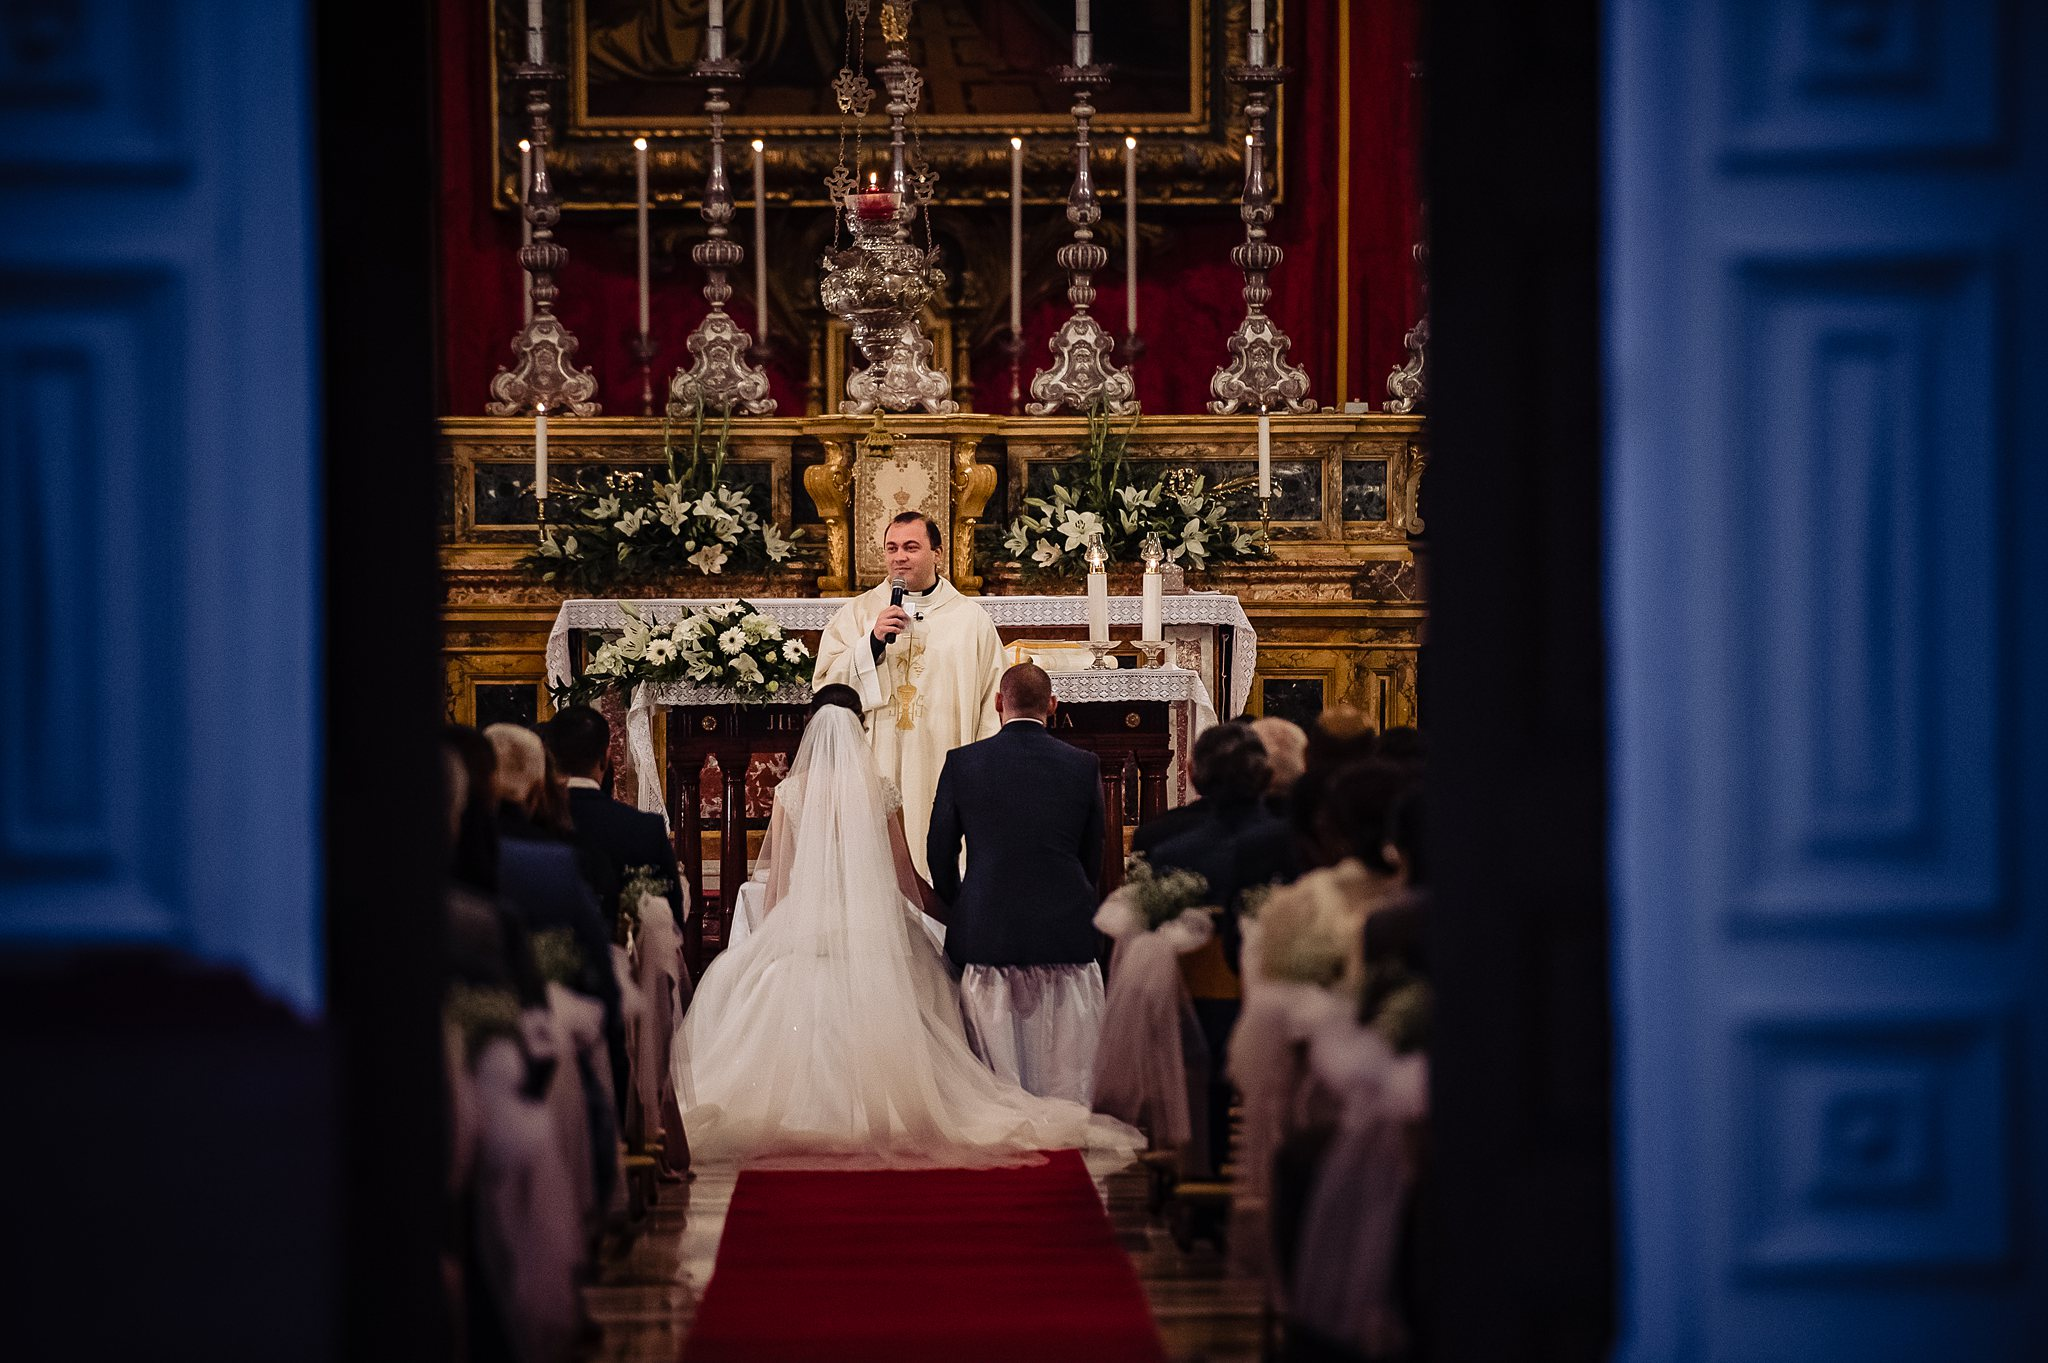 bride and groom kneeling during their ceremony in church- photo by Shane P Watts Photography